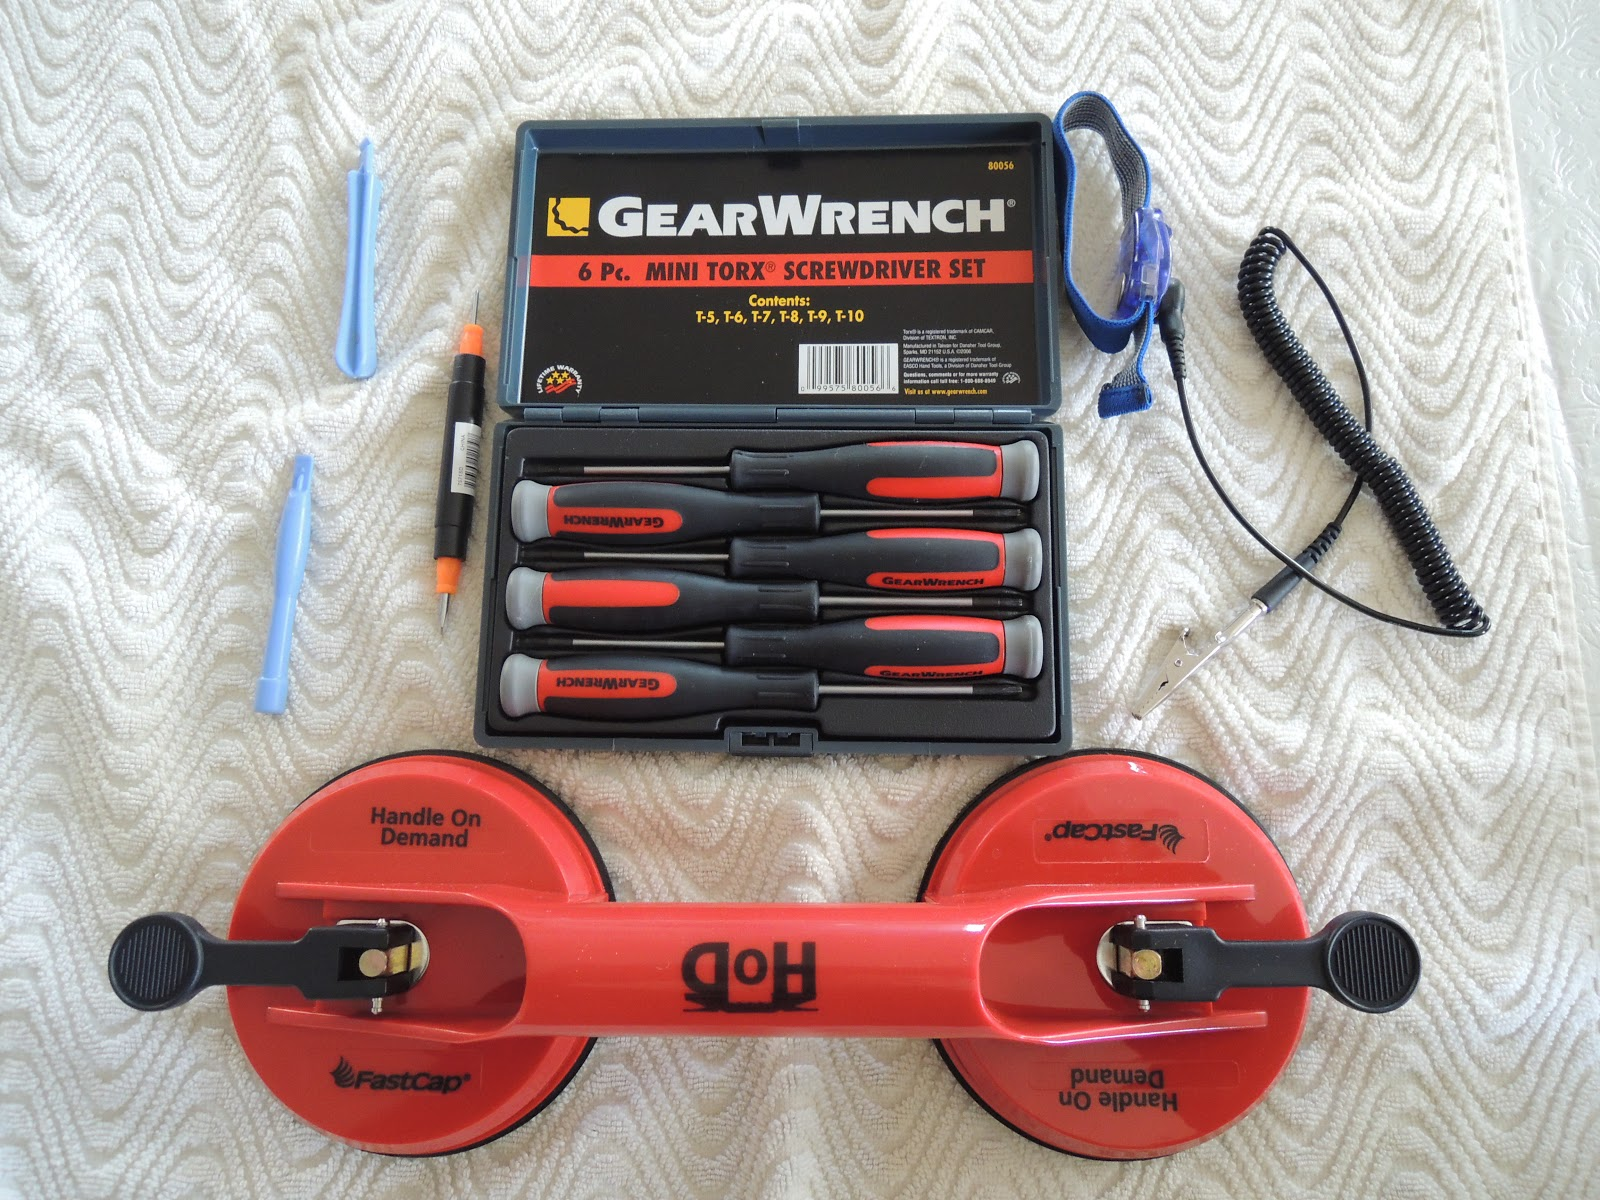 Here is the picture of the tools i used to perform the upgrade grounding wrist band 6 pc mini torx screwdriver set spudgers vacuum cups